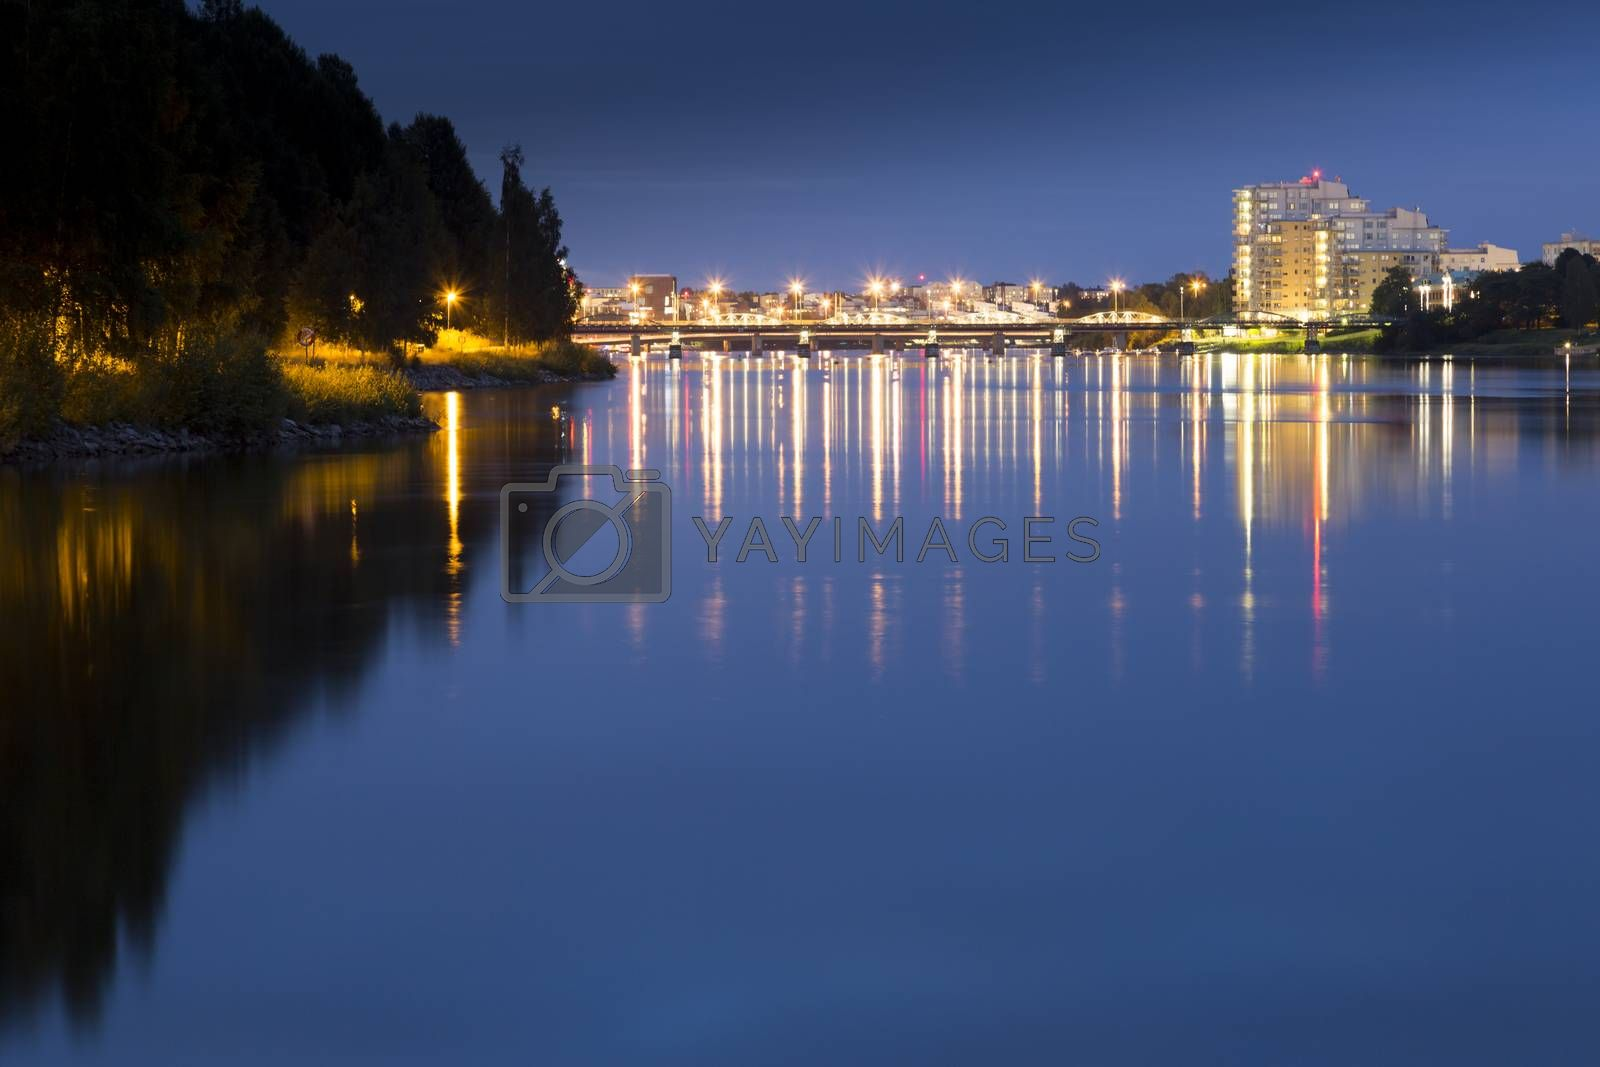 Downtown Umeå, Sweden at Night overlooking the river.